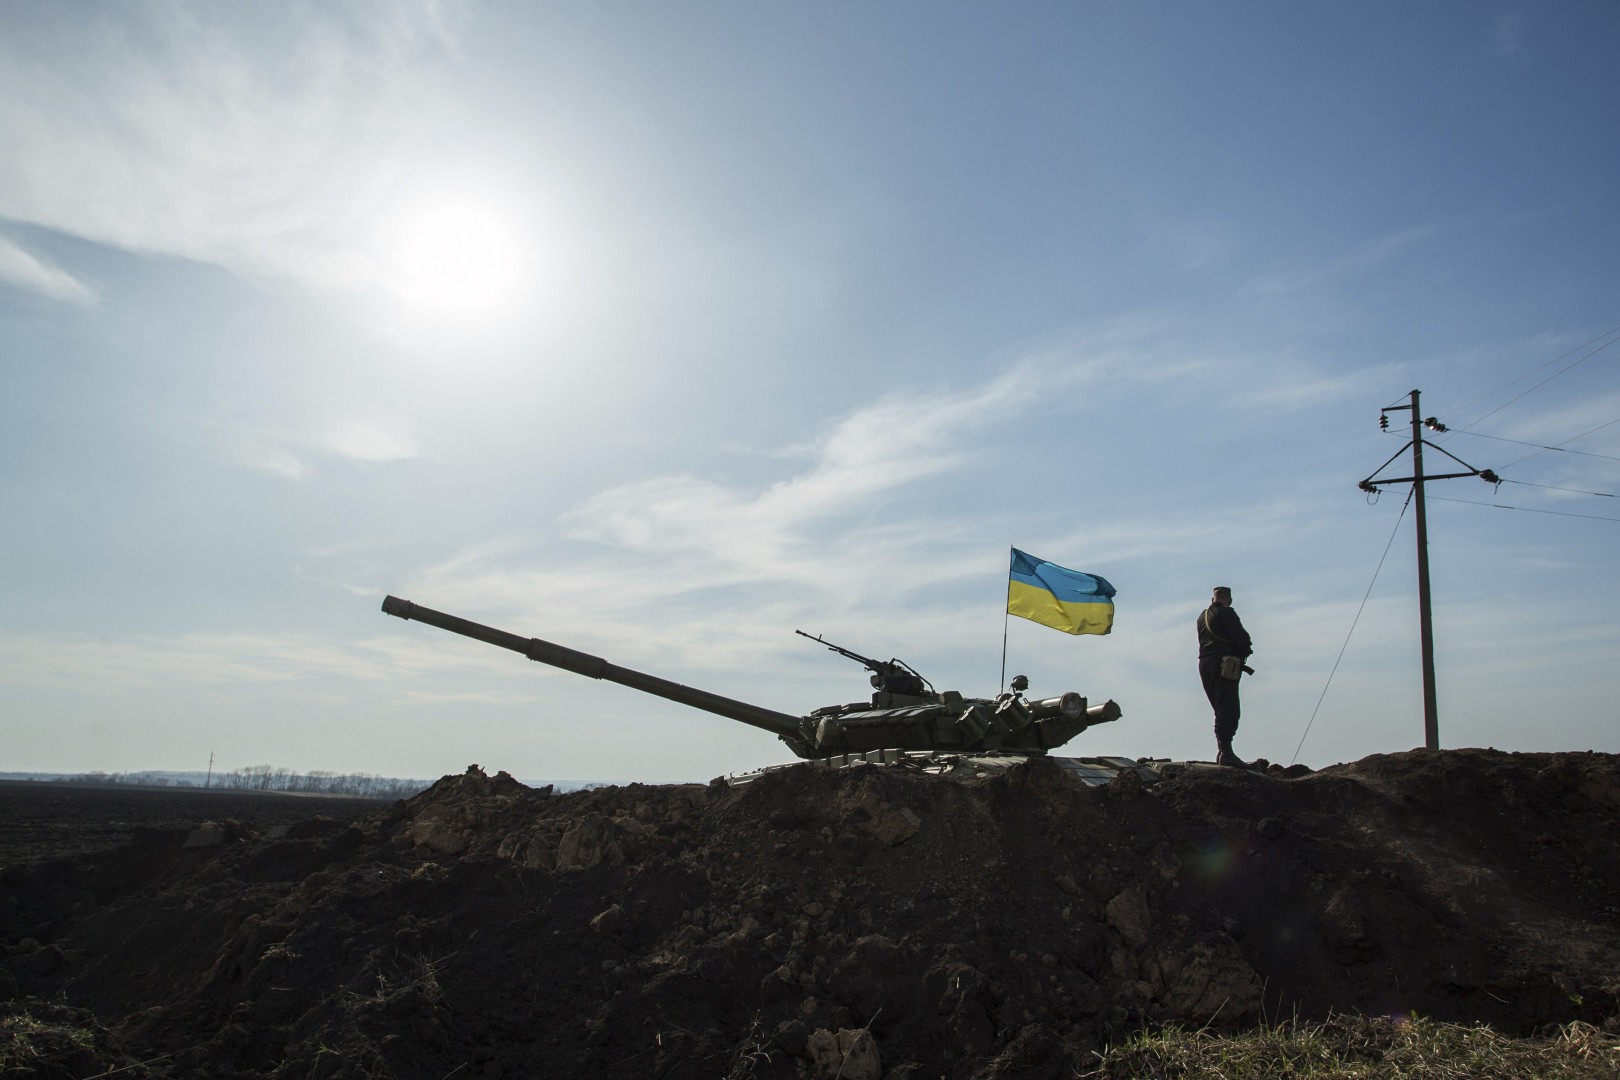 A soldier stands guard near a tank position close to the Russian border near the Ukrainian city of Kharkiv in this March 24, 2014 file photo. Six years after losing land in a war with Russia, Georgians believe the struggle for Ukraine will decide their own fate, and hope NATO and the European Union will now speed up their integration into the Western fold. Picture taken March 24, 2014. To match Analysis story UKRAINE-CRISIS/GEORGIA   REUTERS/Dmitry Neymyrok/Files (UKRAINE - Tags: POLITICS MILITARY)